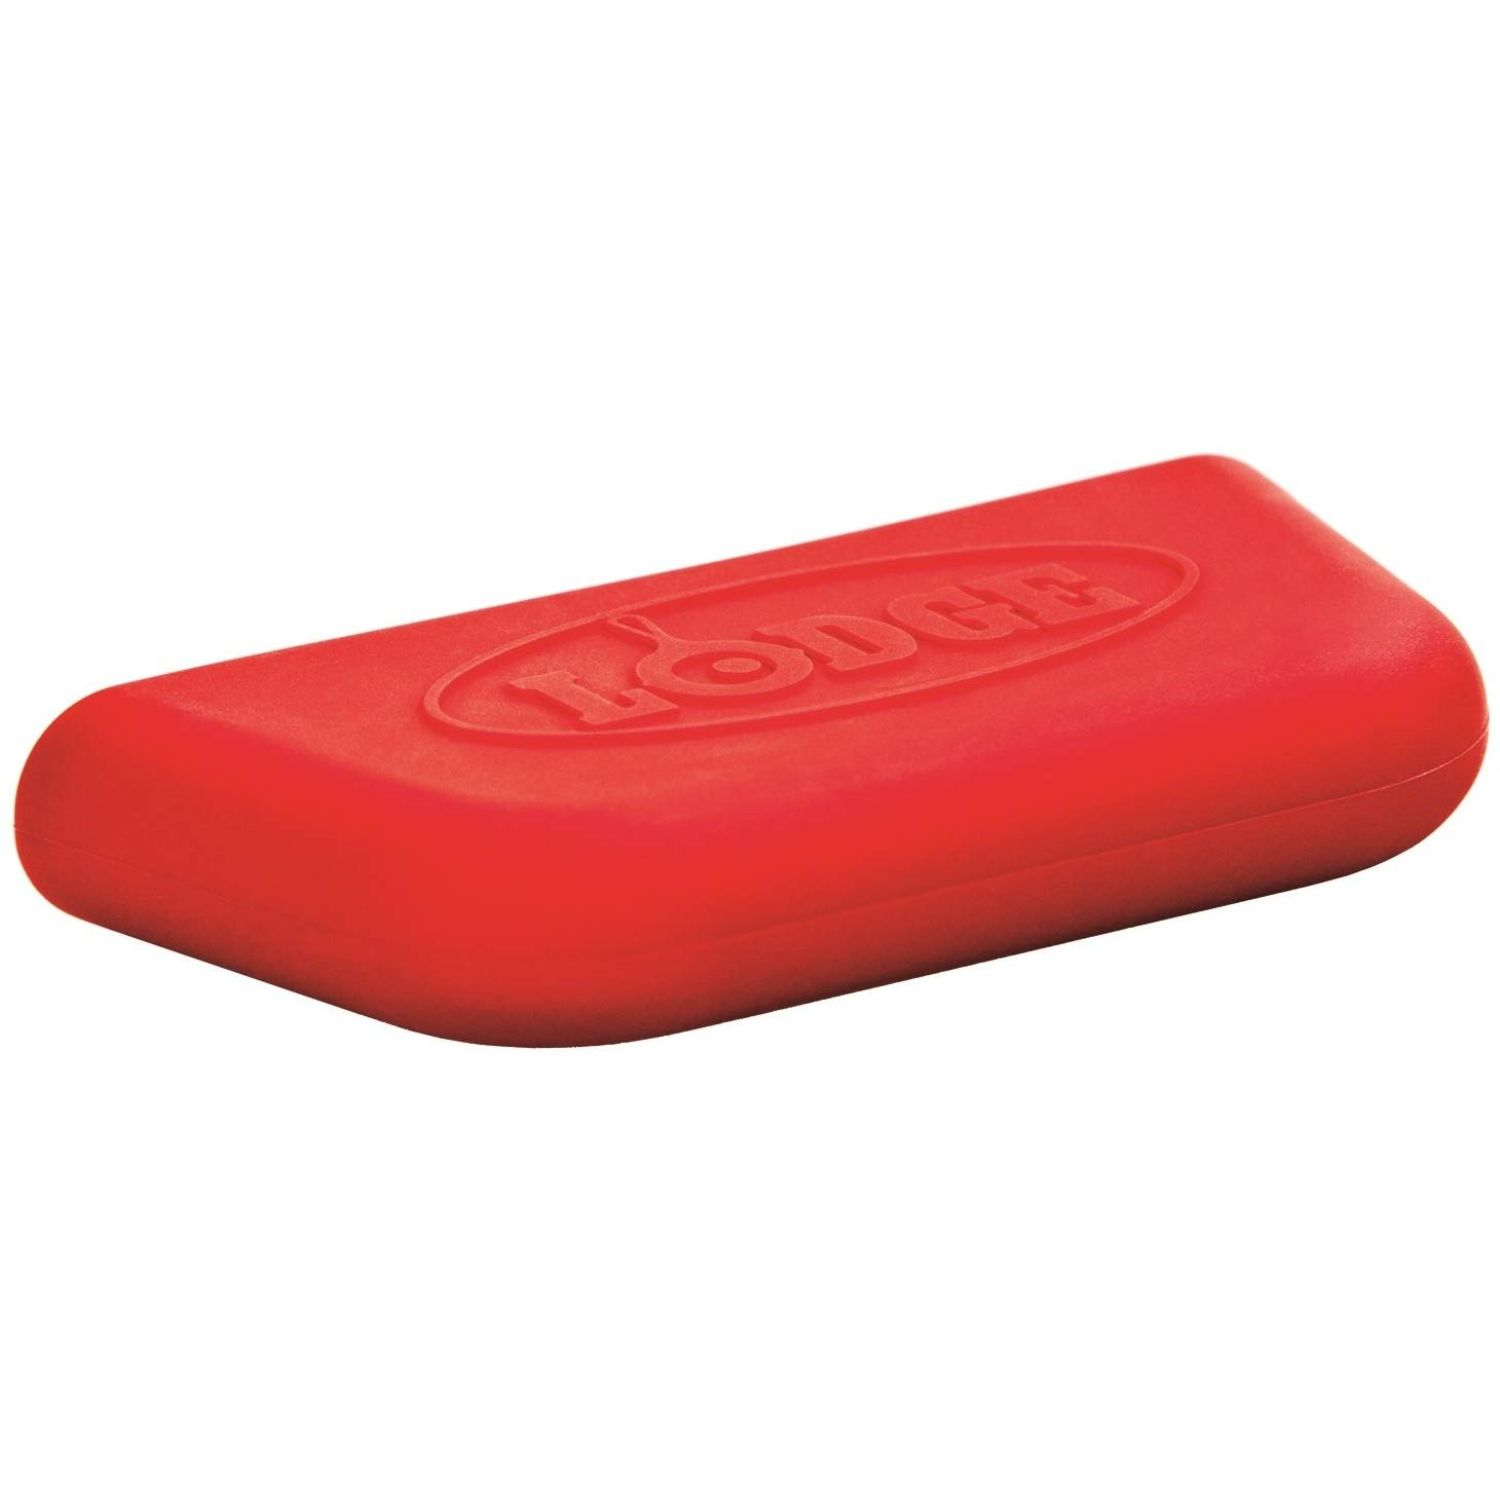 Lodge ASPHH41 Red Silicone Assist Handle Holder